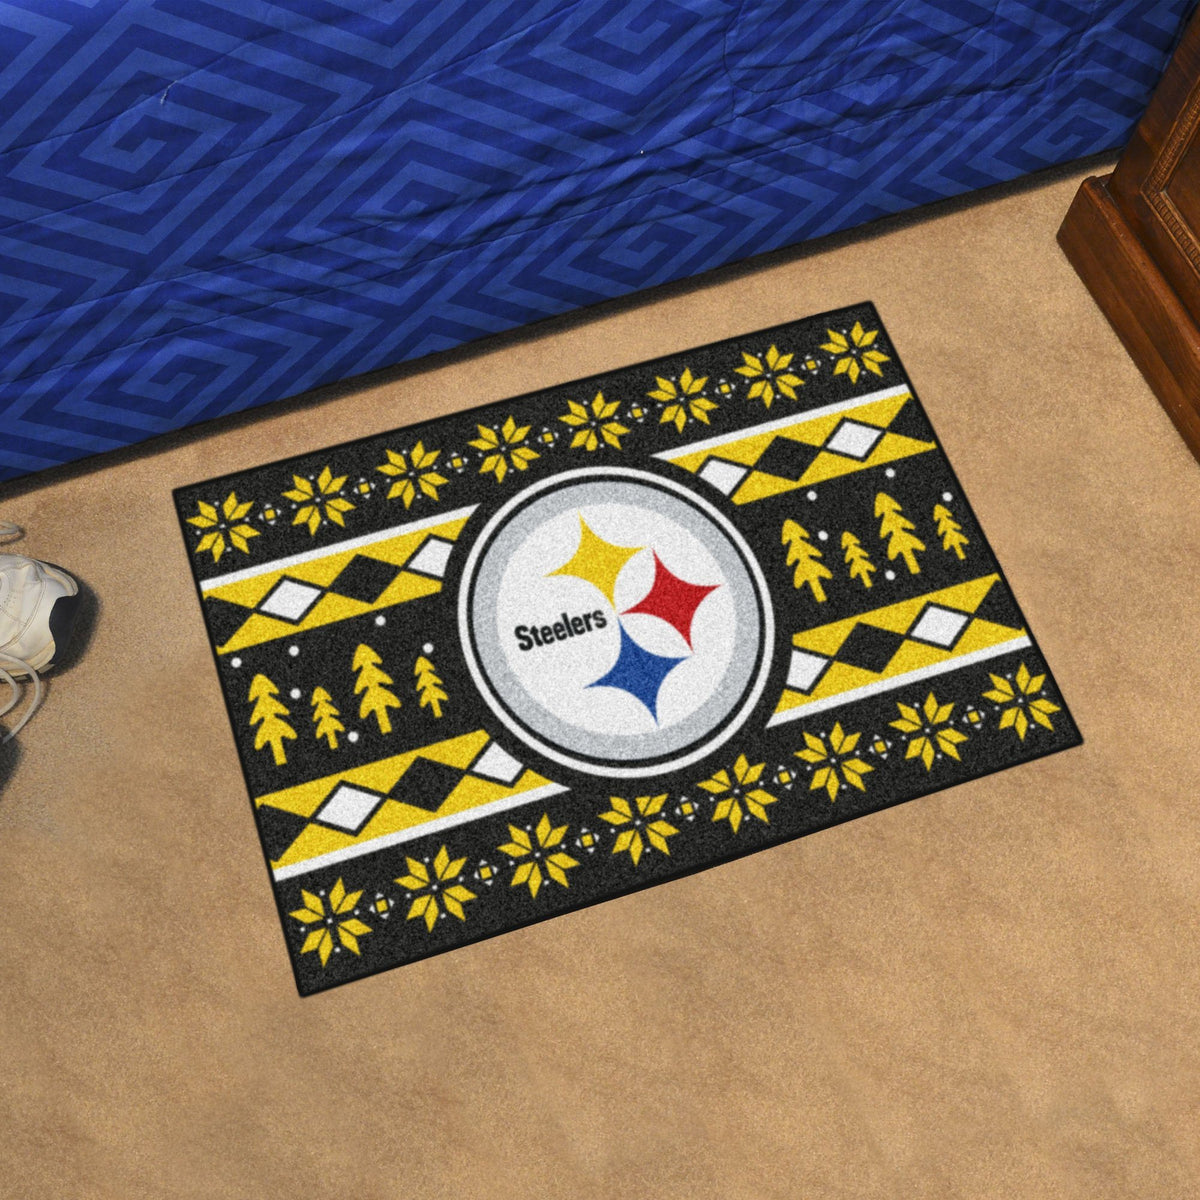 "NFL - Holiday Sweater Starter Mat, 19"" x 30"" NFL Mats, Rectangular Mats, Holiday Sweater Starter Mat, NFL, Home Fan Mats Pittsburgh Steelers"